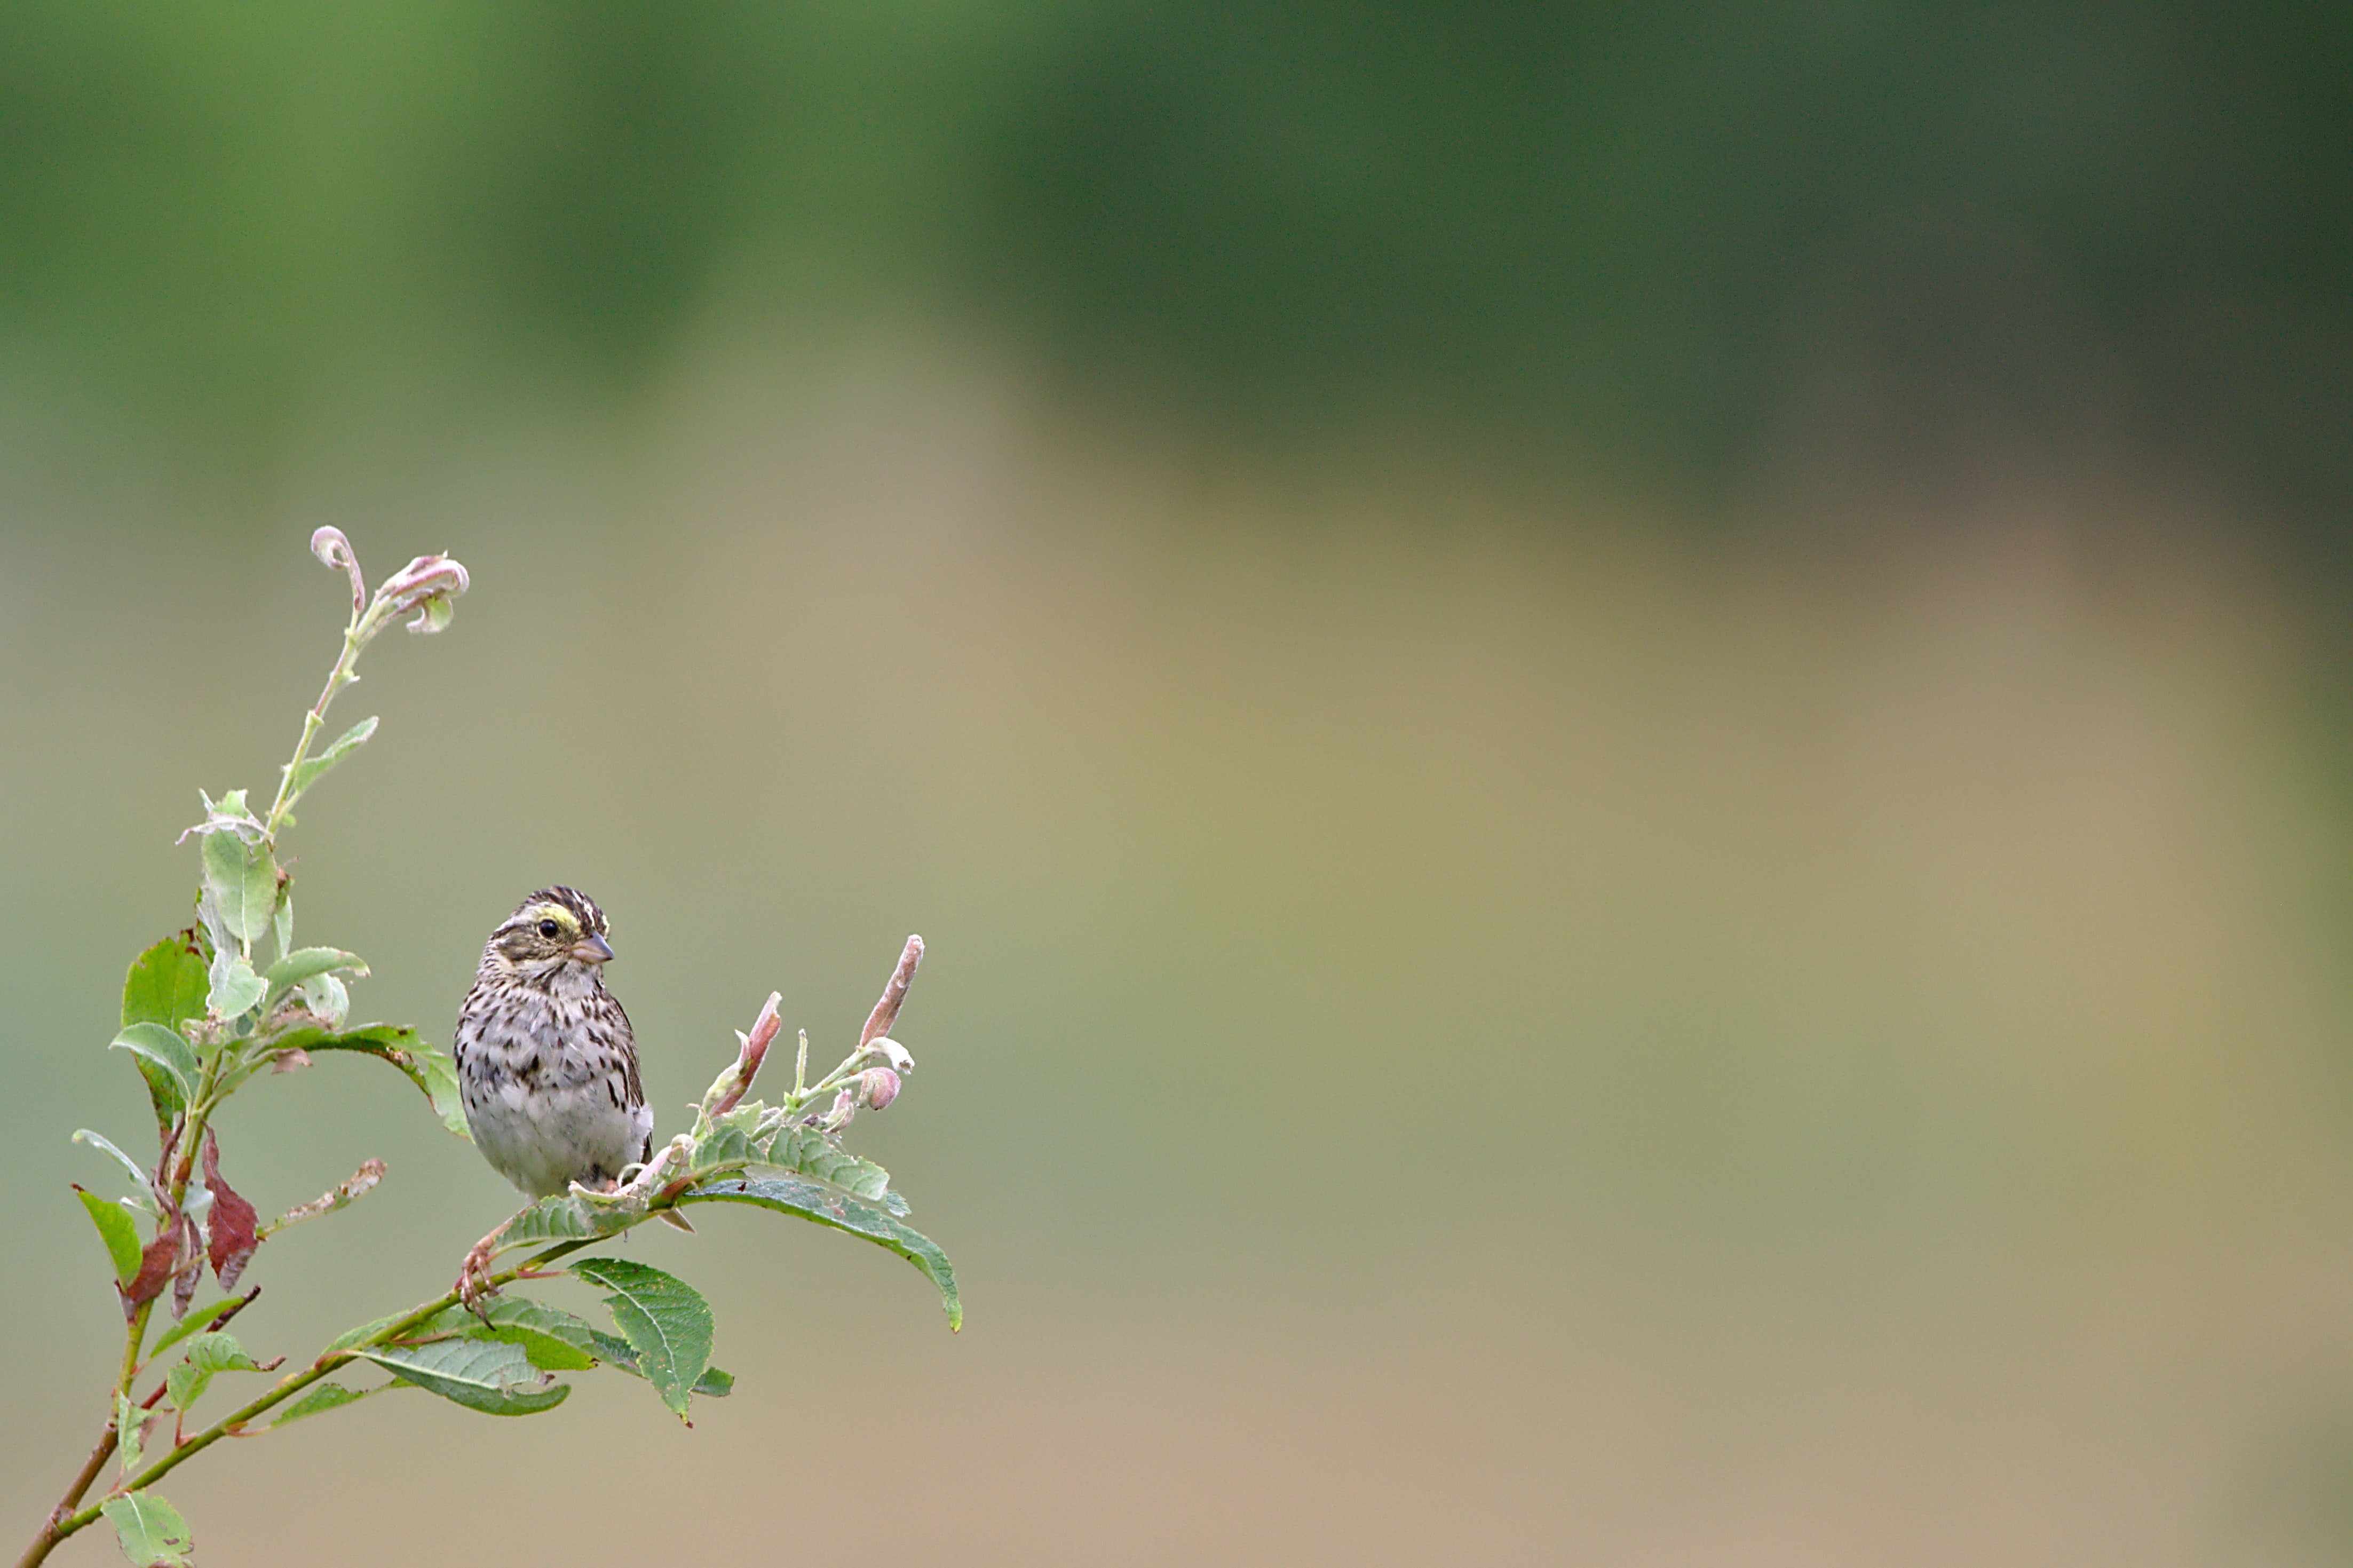 selective-focus photo of gray bird perched on branch